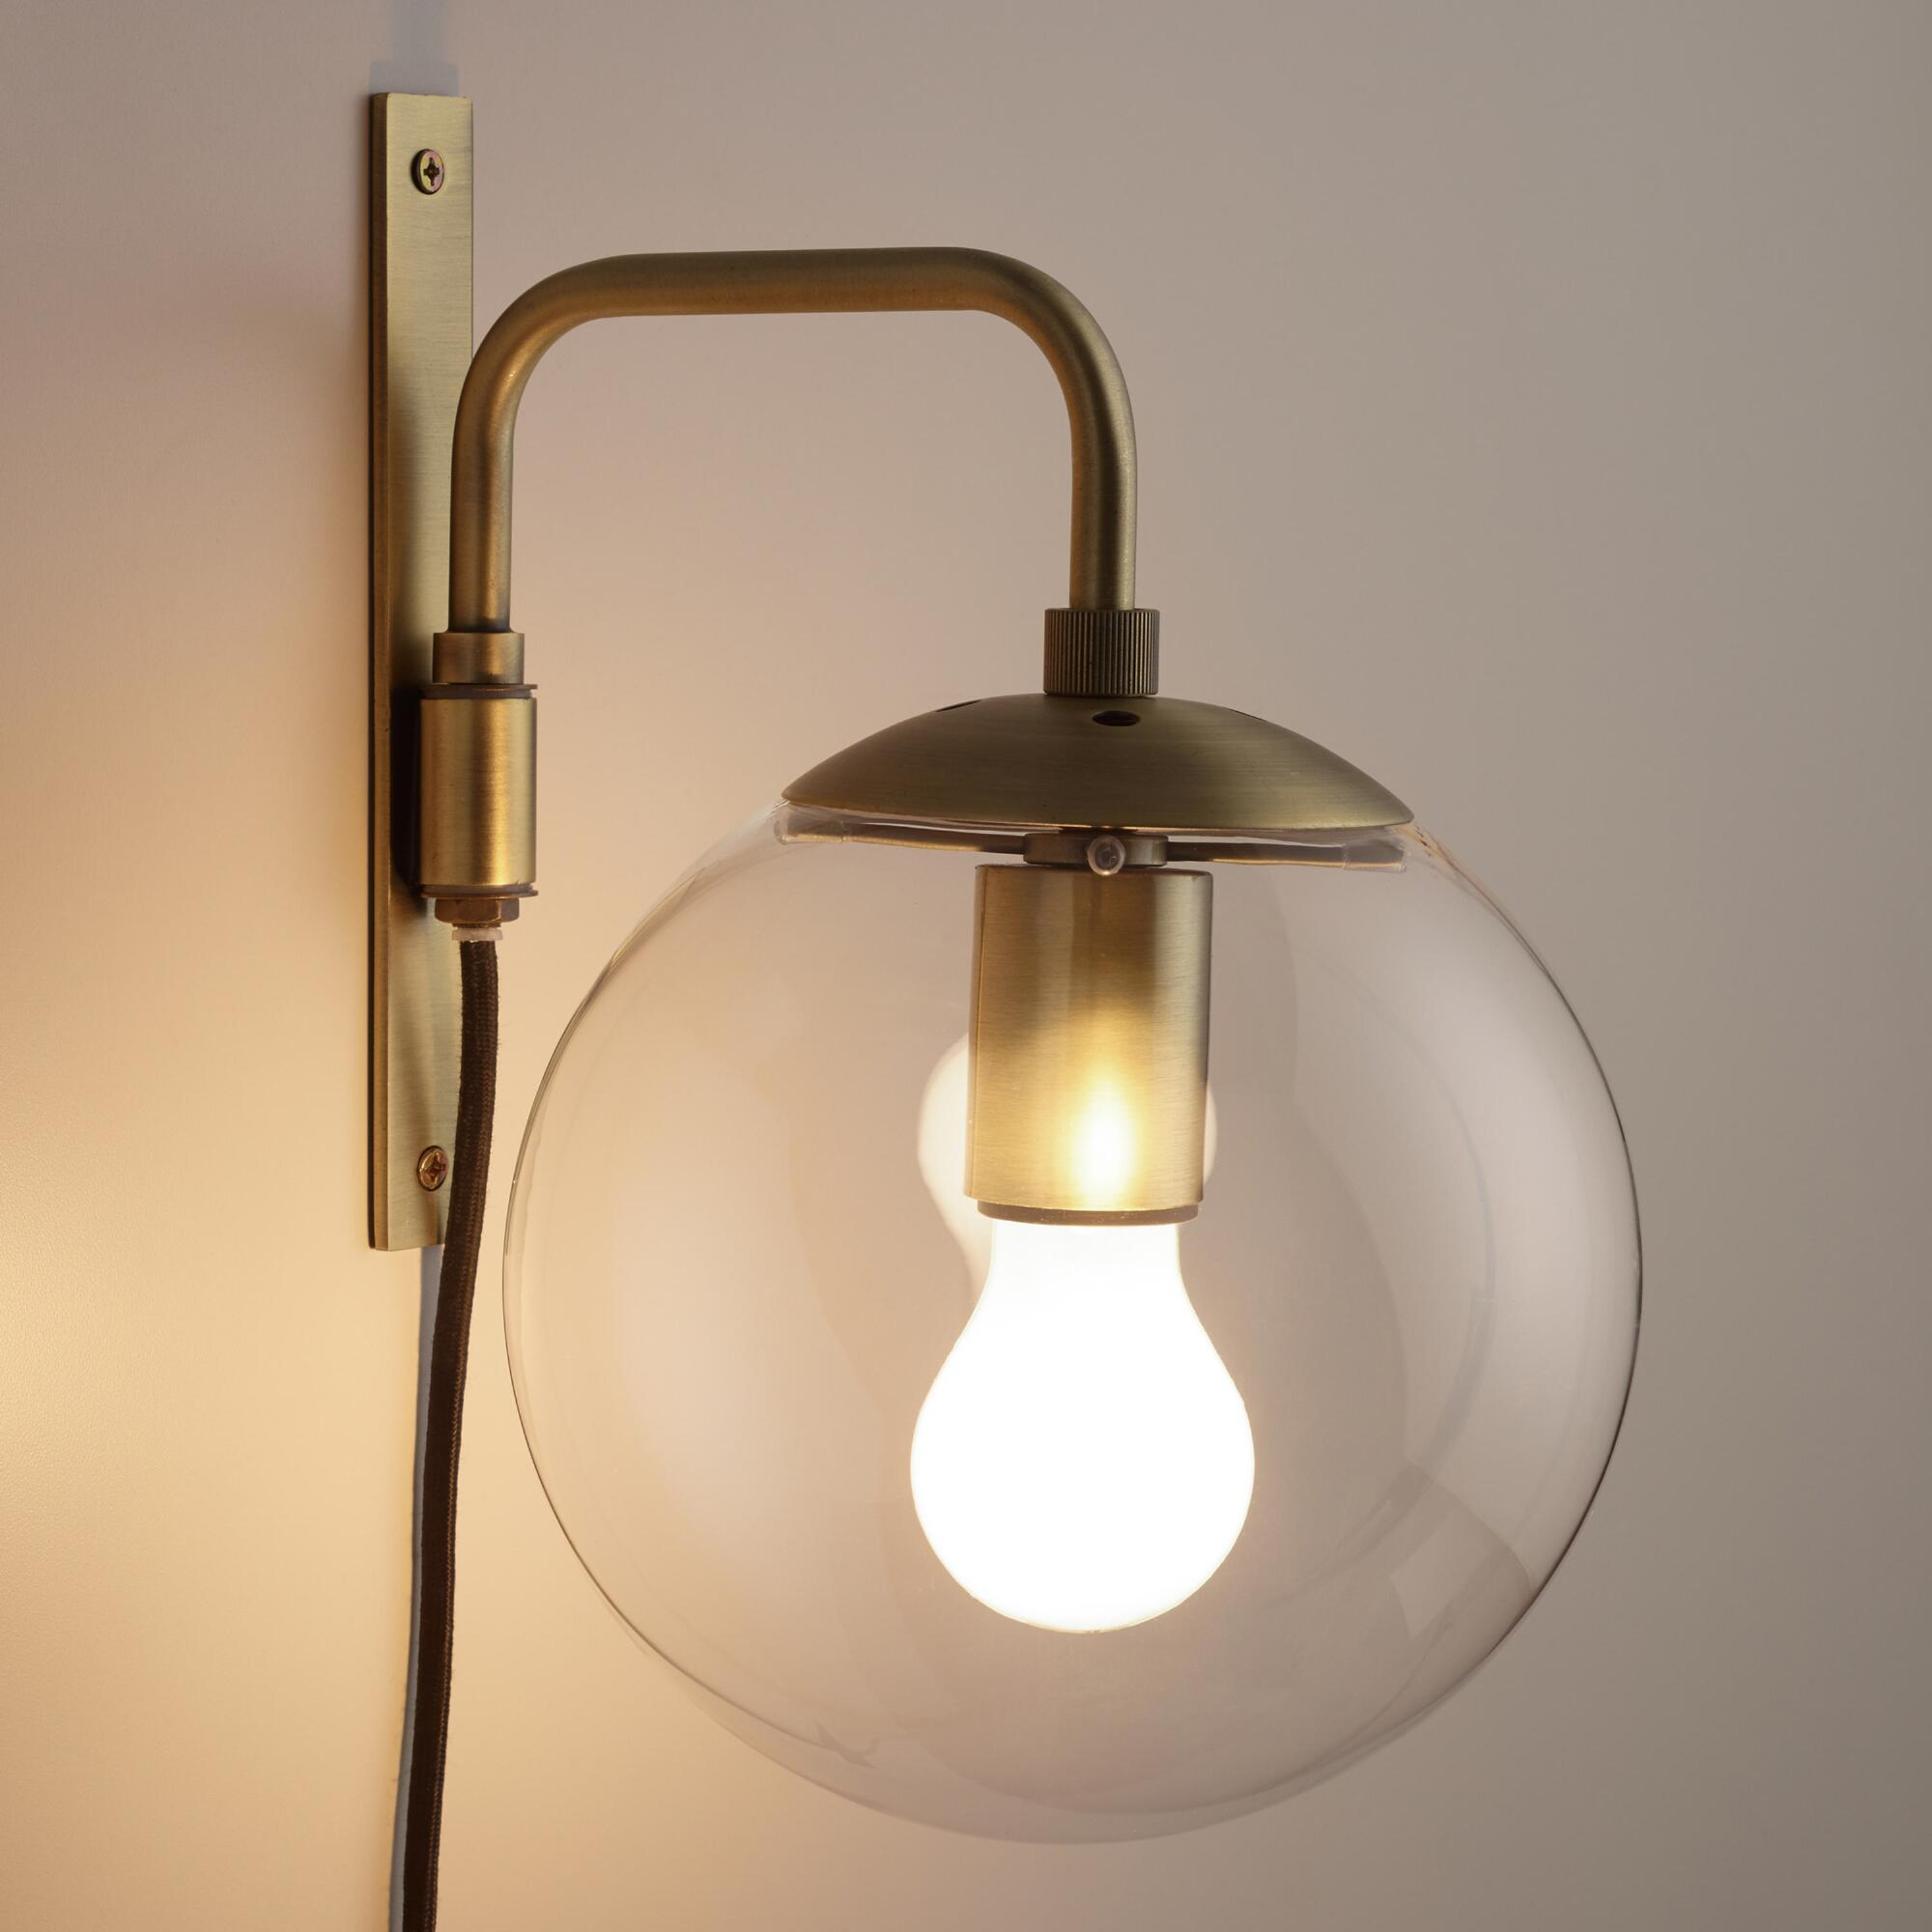 Glass globe wall sconce by world market